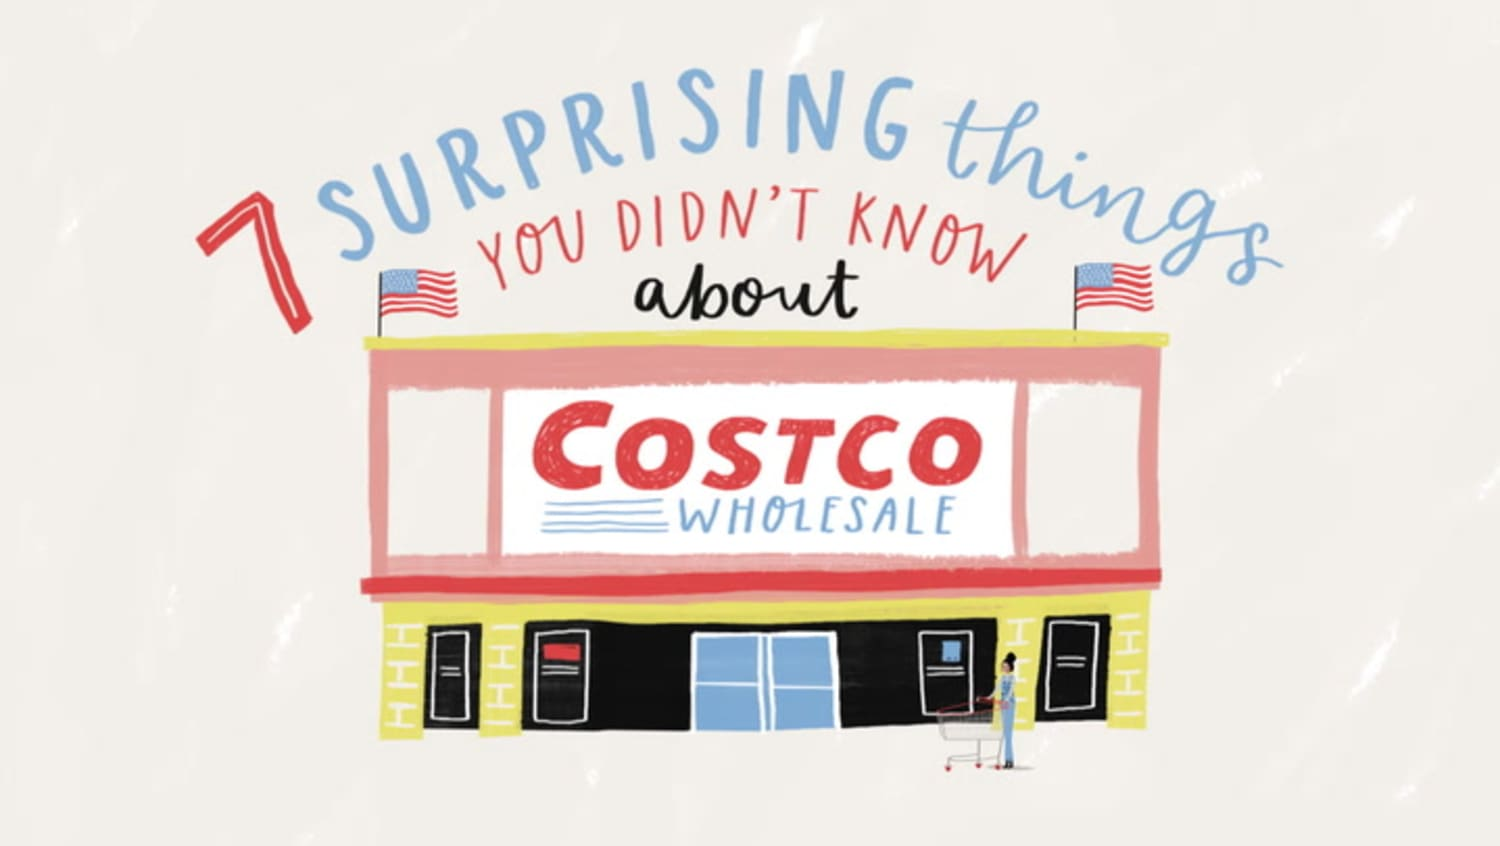 7 Surprising Things You Didn't Know About Costco